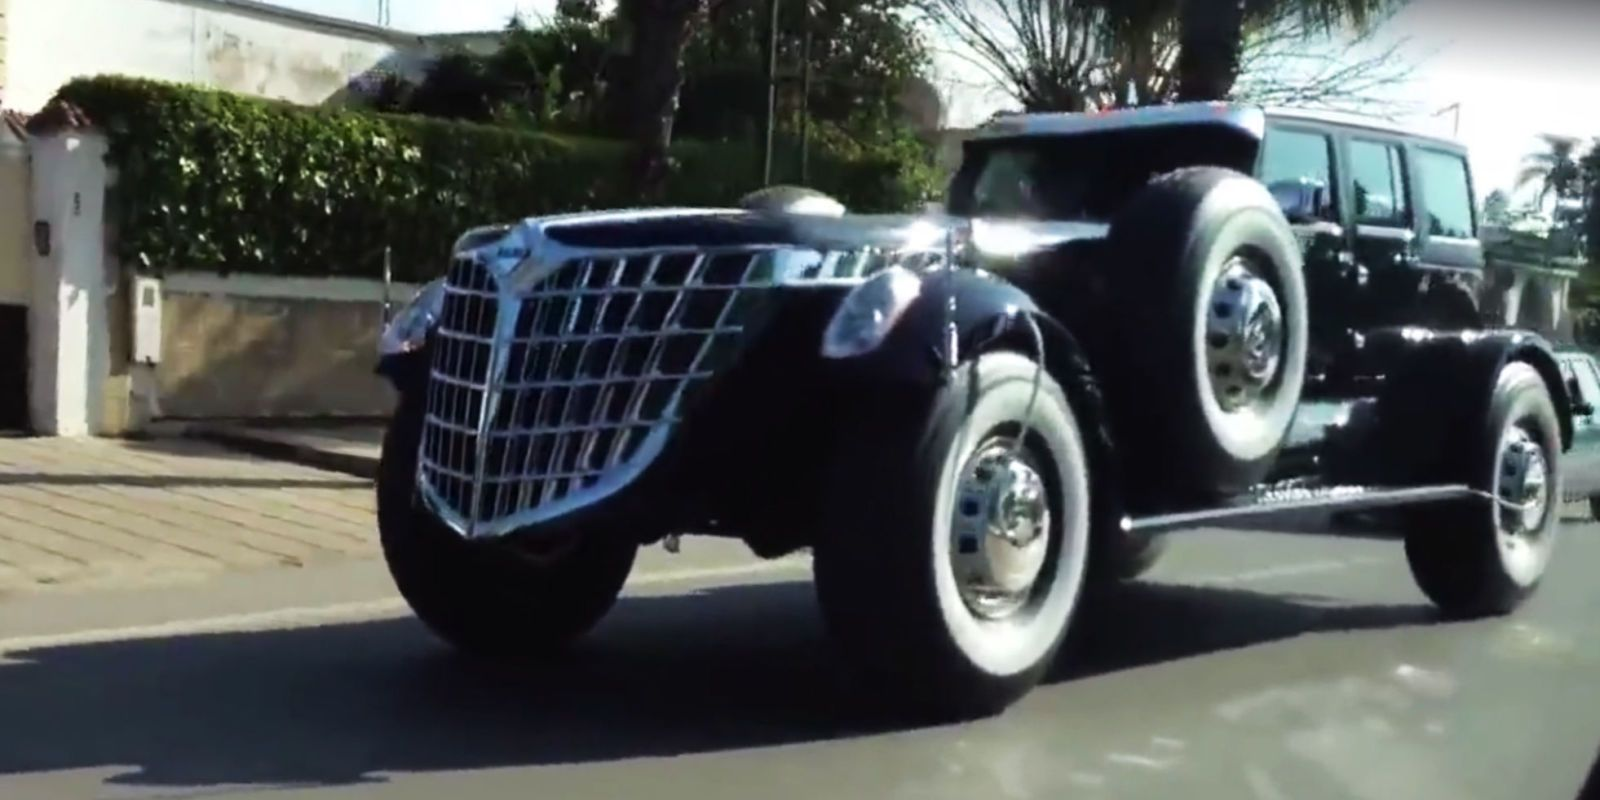 I Don't Care What You Think, I'd Drive the Hell Out of This Ridiculous Car